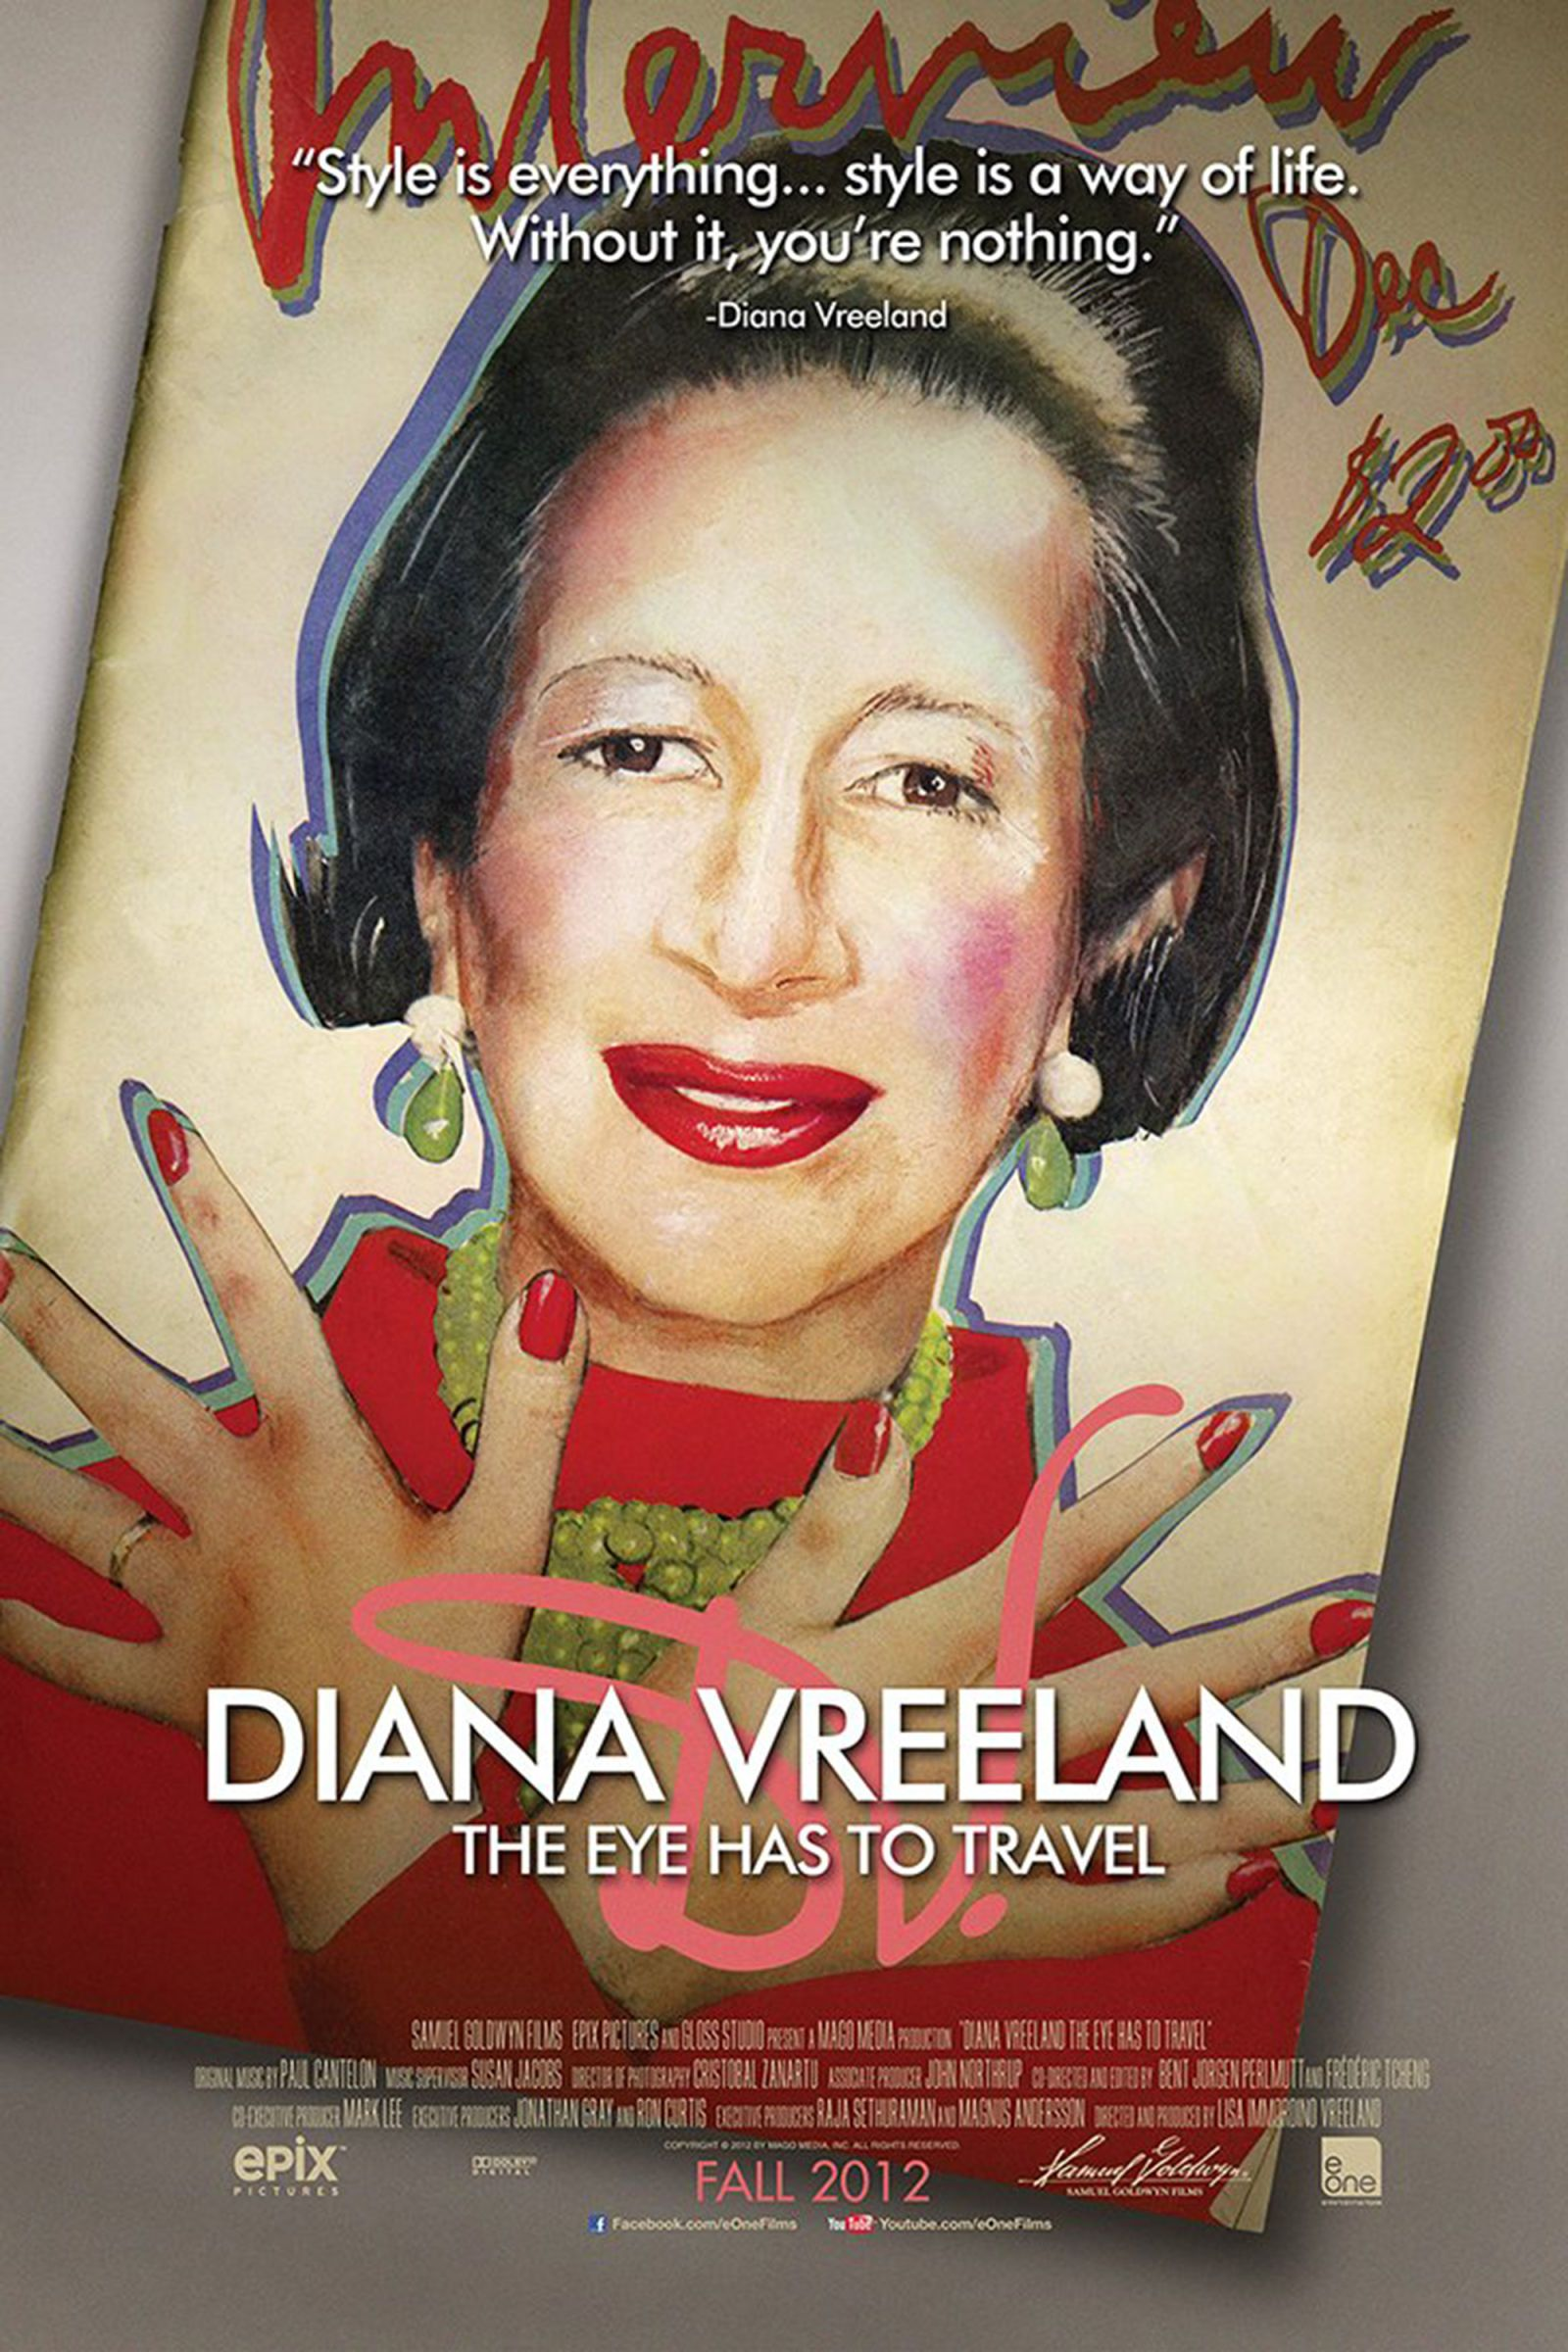 """<p>A labor of love, this documentary about the legendary fashion editor was the brainchild of Lisa Immordino Vreeland, the wife of Diana's grandson Alexander. Using the tapes Diana made to write her biography<em data-verified=""""redactor"""" data-redactor-tag=""""em"""">D.V.</em><span class=""""redactor-invisible-space""""> and speaking to those who knew her, (such as David Bailey and Penelope Tree) Lisa discovered not only Diana's well-documented influence on the fashion world, but also her private vulnerabilities and insecurities.</span></p>"""